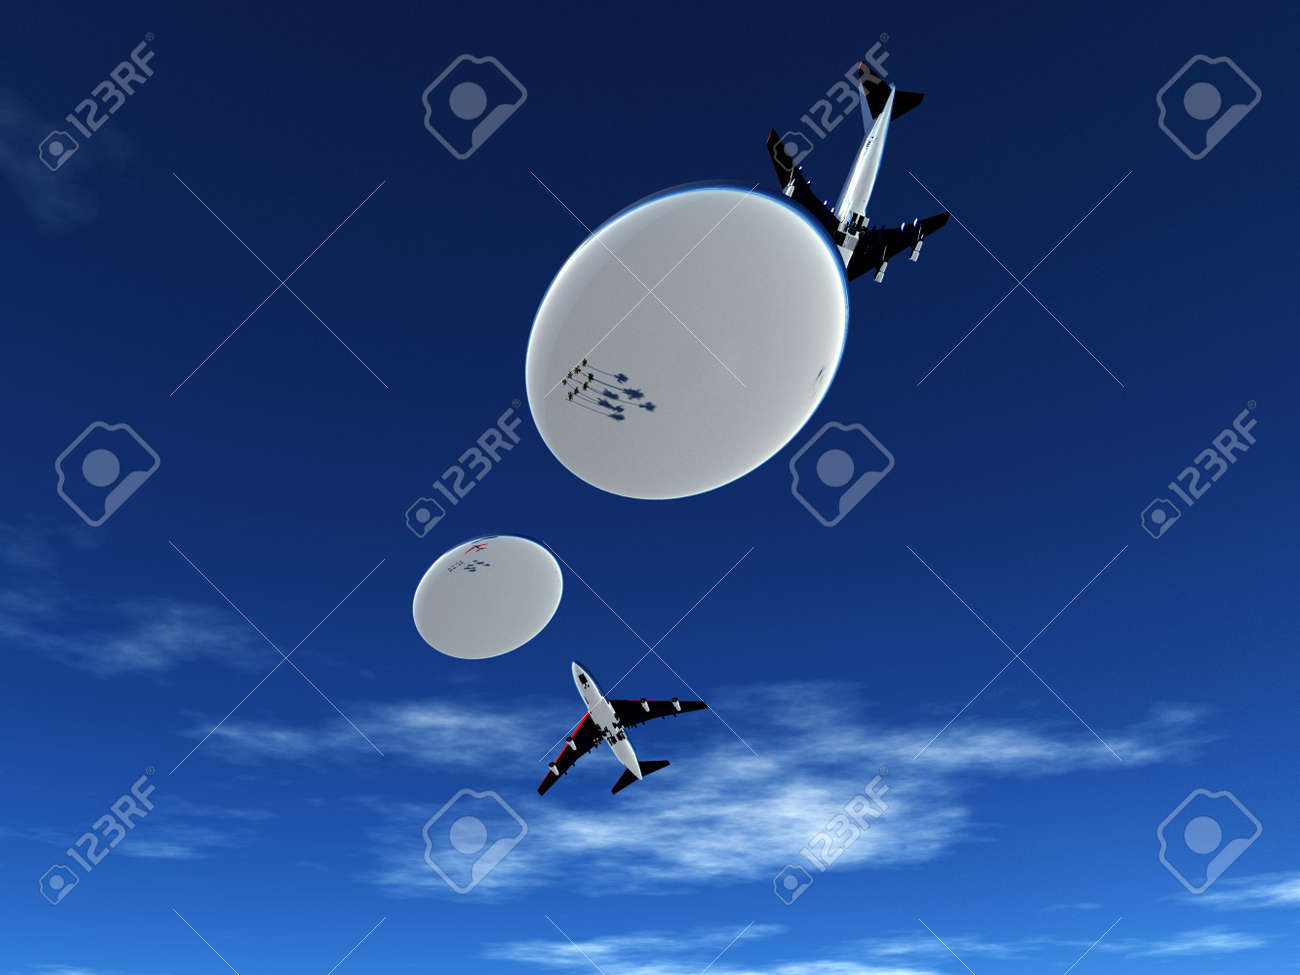 Some planes being pursed by a fleet of flying saucers. Stock Photo - 5726478